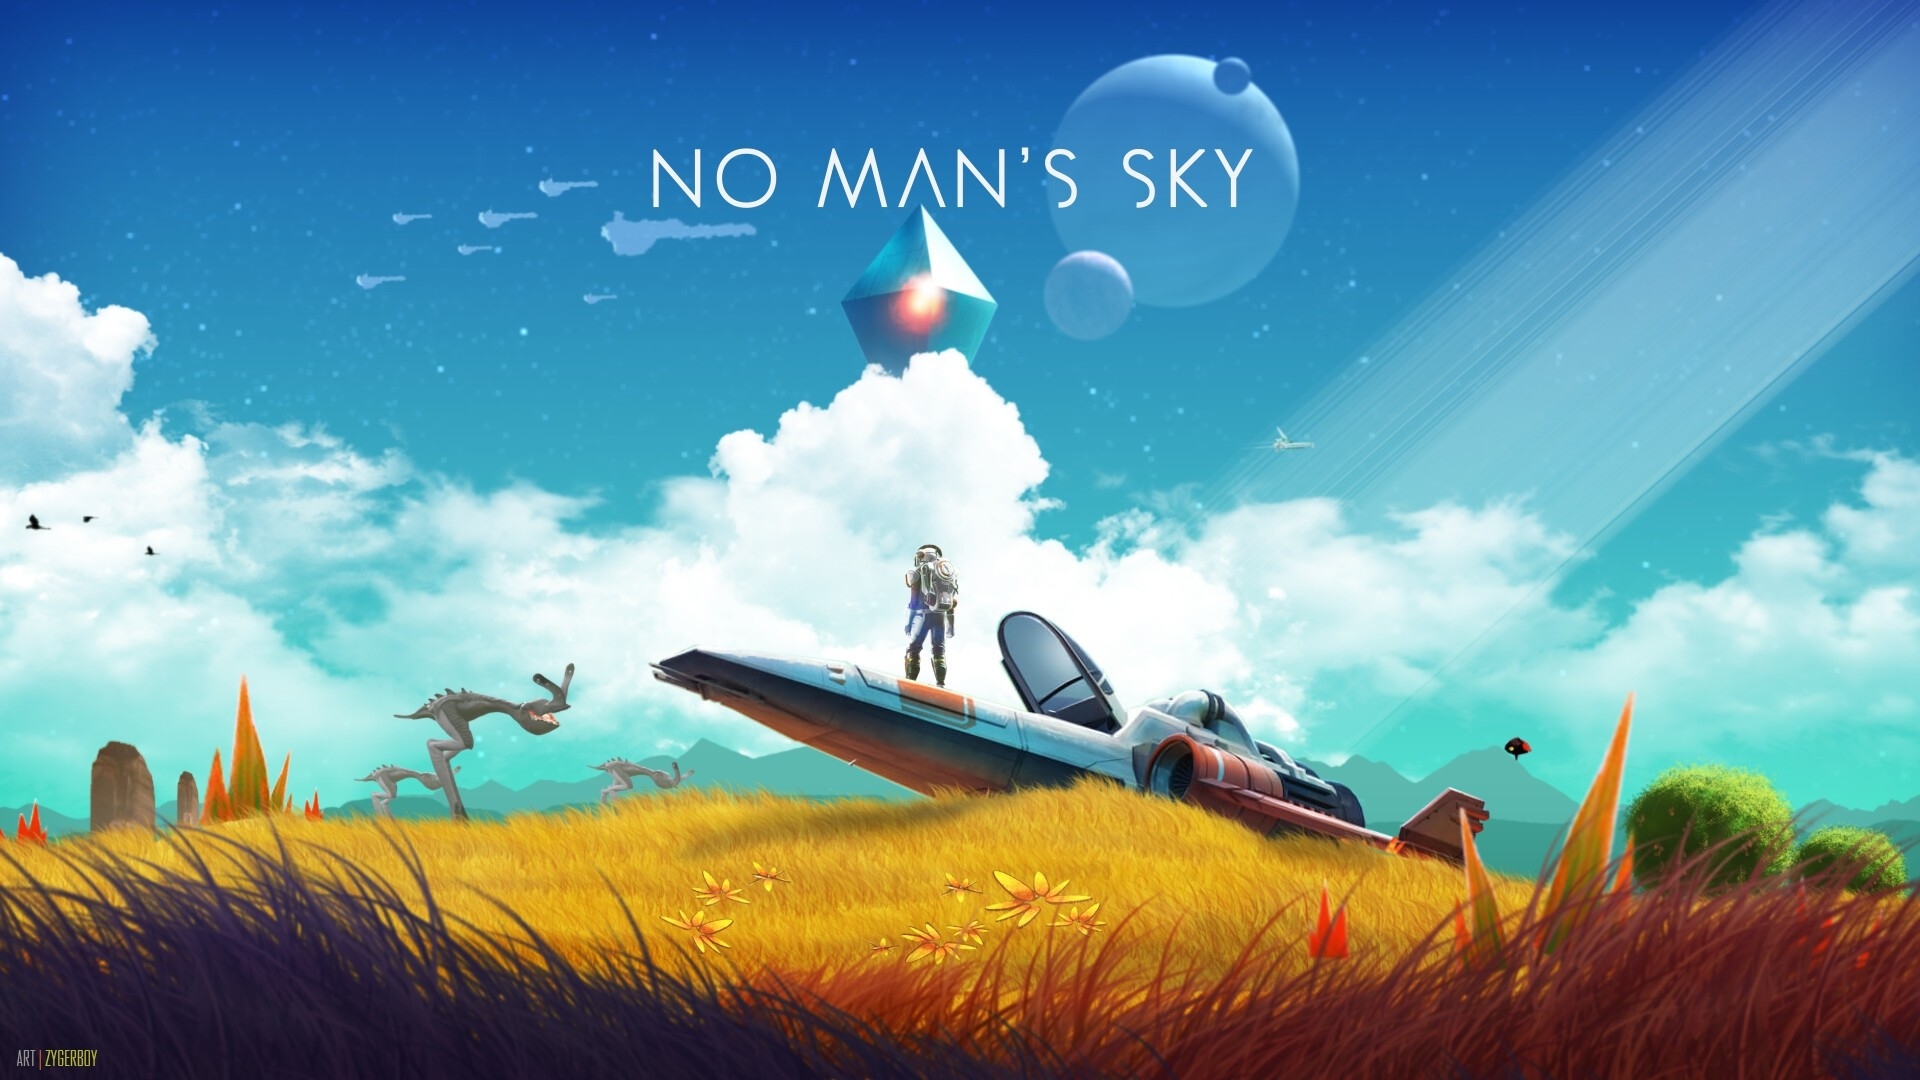 No Man's Sky wallpaper photo hd